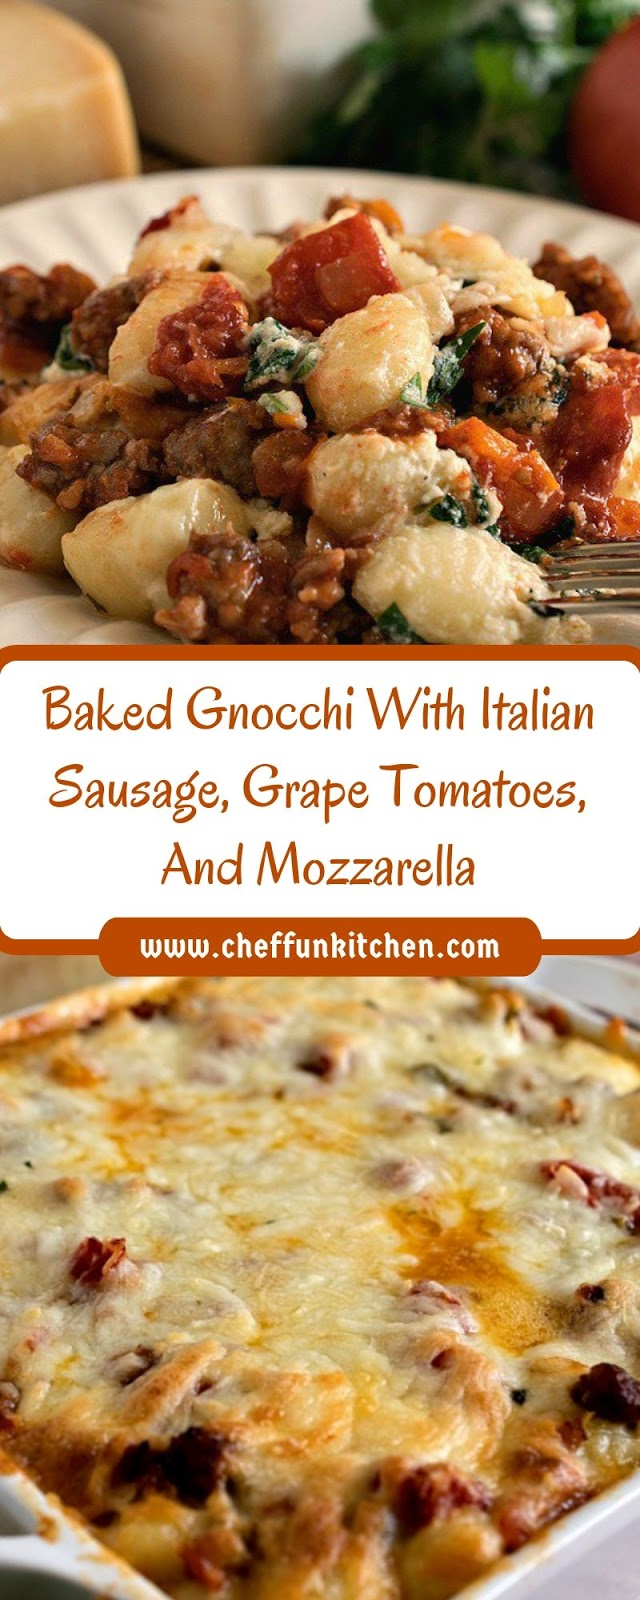 Baked Gnocchi With Italian Sausage, Grape Tomatoes, And Mozzarella